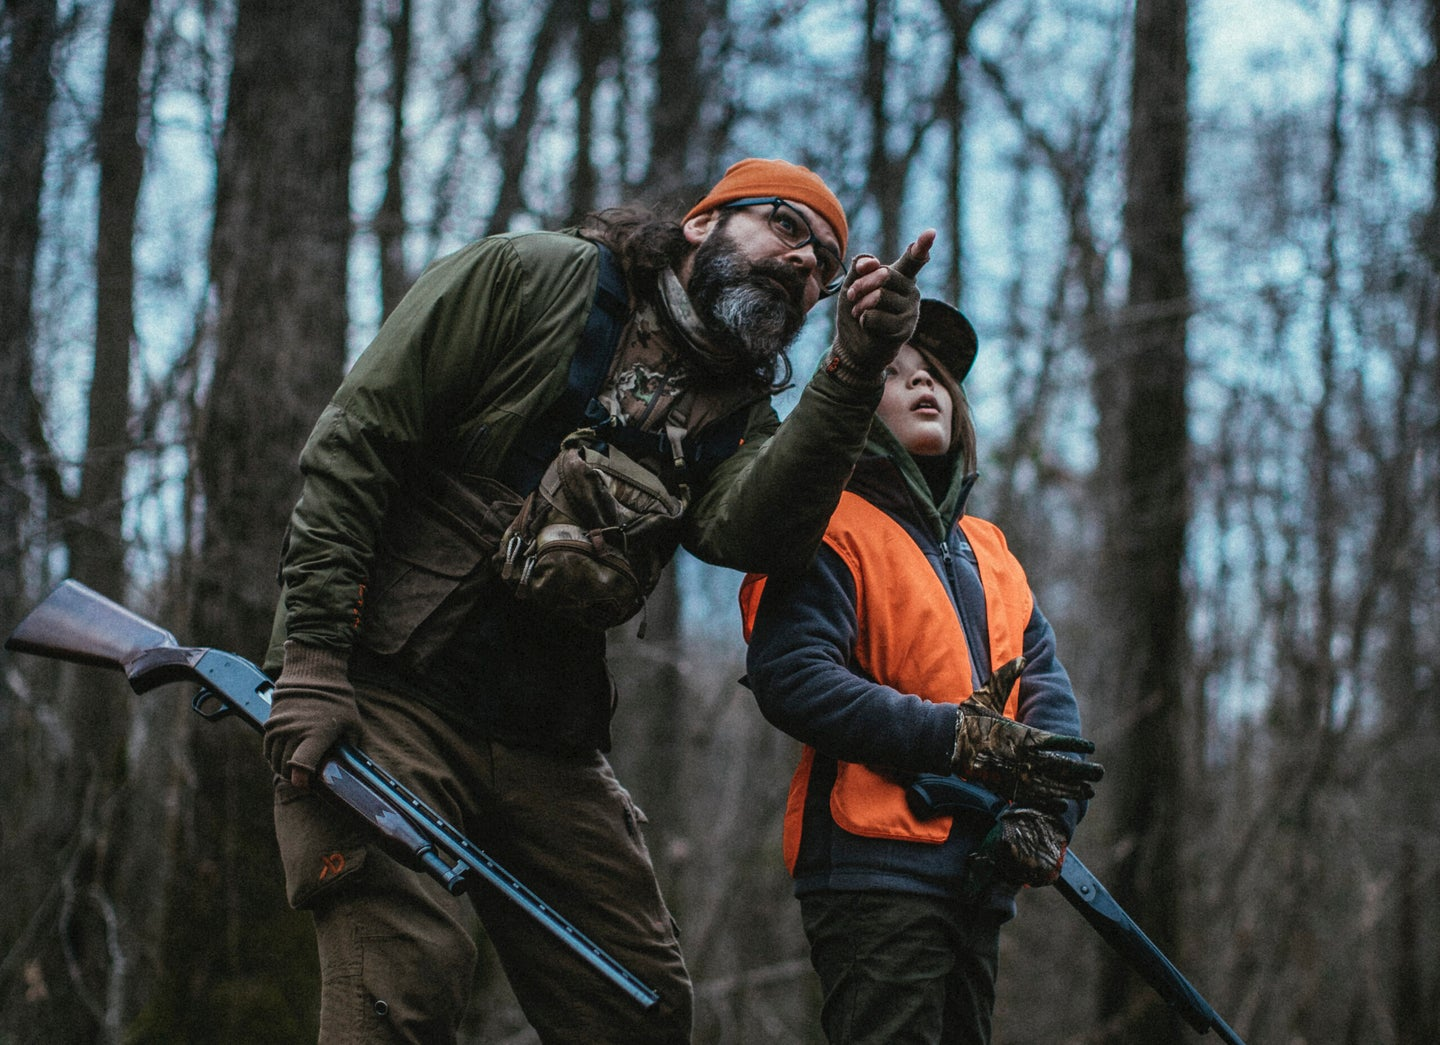 Father and son hunting for squirrels in the woods.